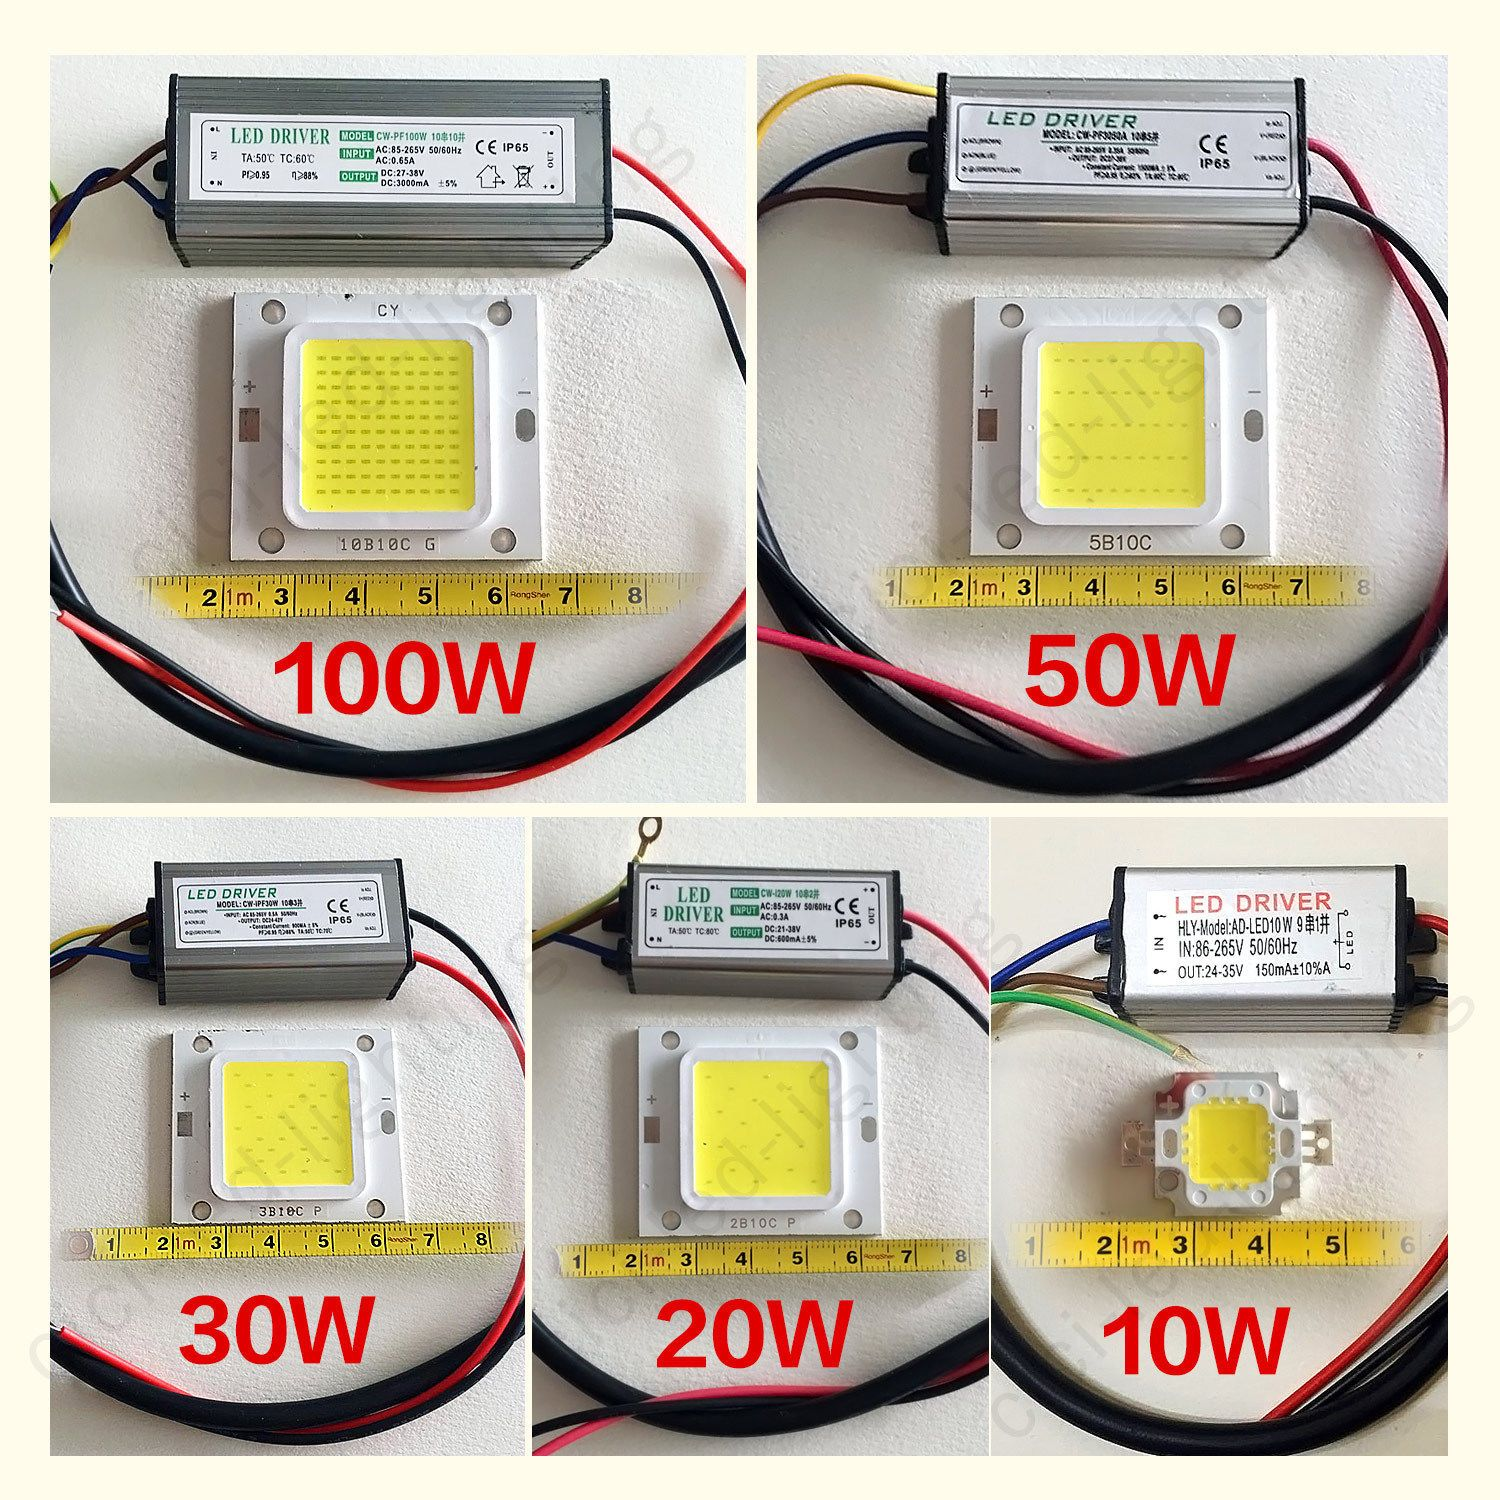 Led Cob Chip Power Supply Driver 100w 50w 30w 20w 10w Smd For Flood Light Bulb Ebay Led Drivers Power Led Led